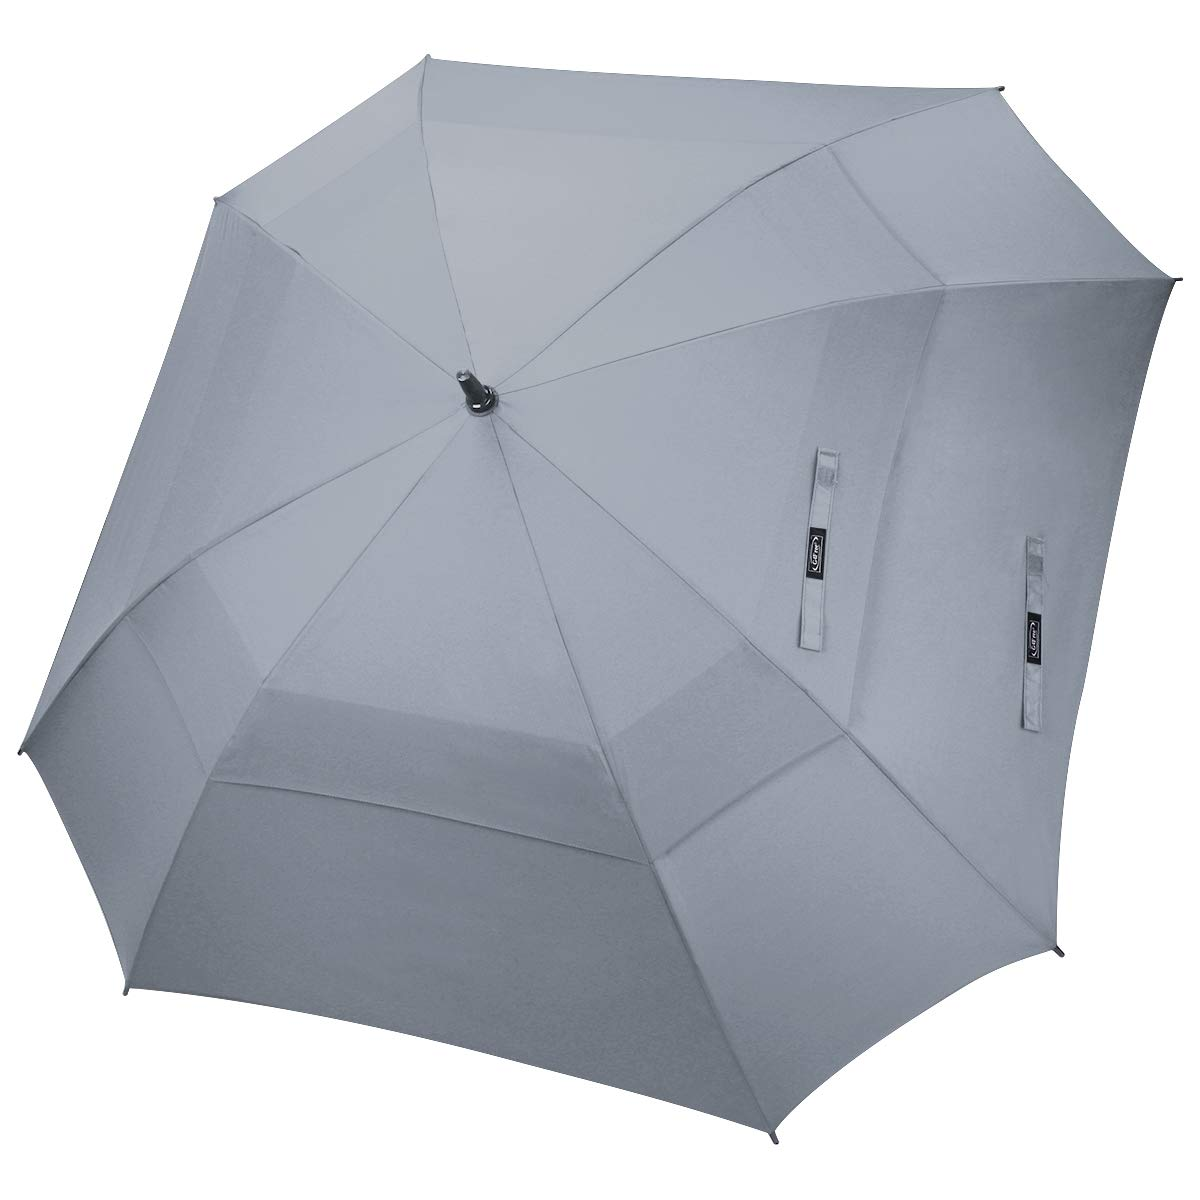 G4Free Extra Large Golf Umbrella Double Canopy Vented Square Umbrella Windproof Automatic Open 62 Inch Oversize Stick Umbrella for Men Women (Grey) by G4Free